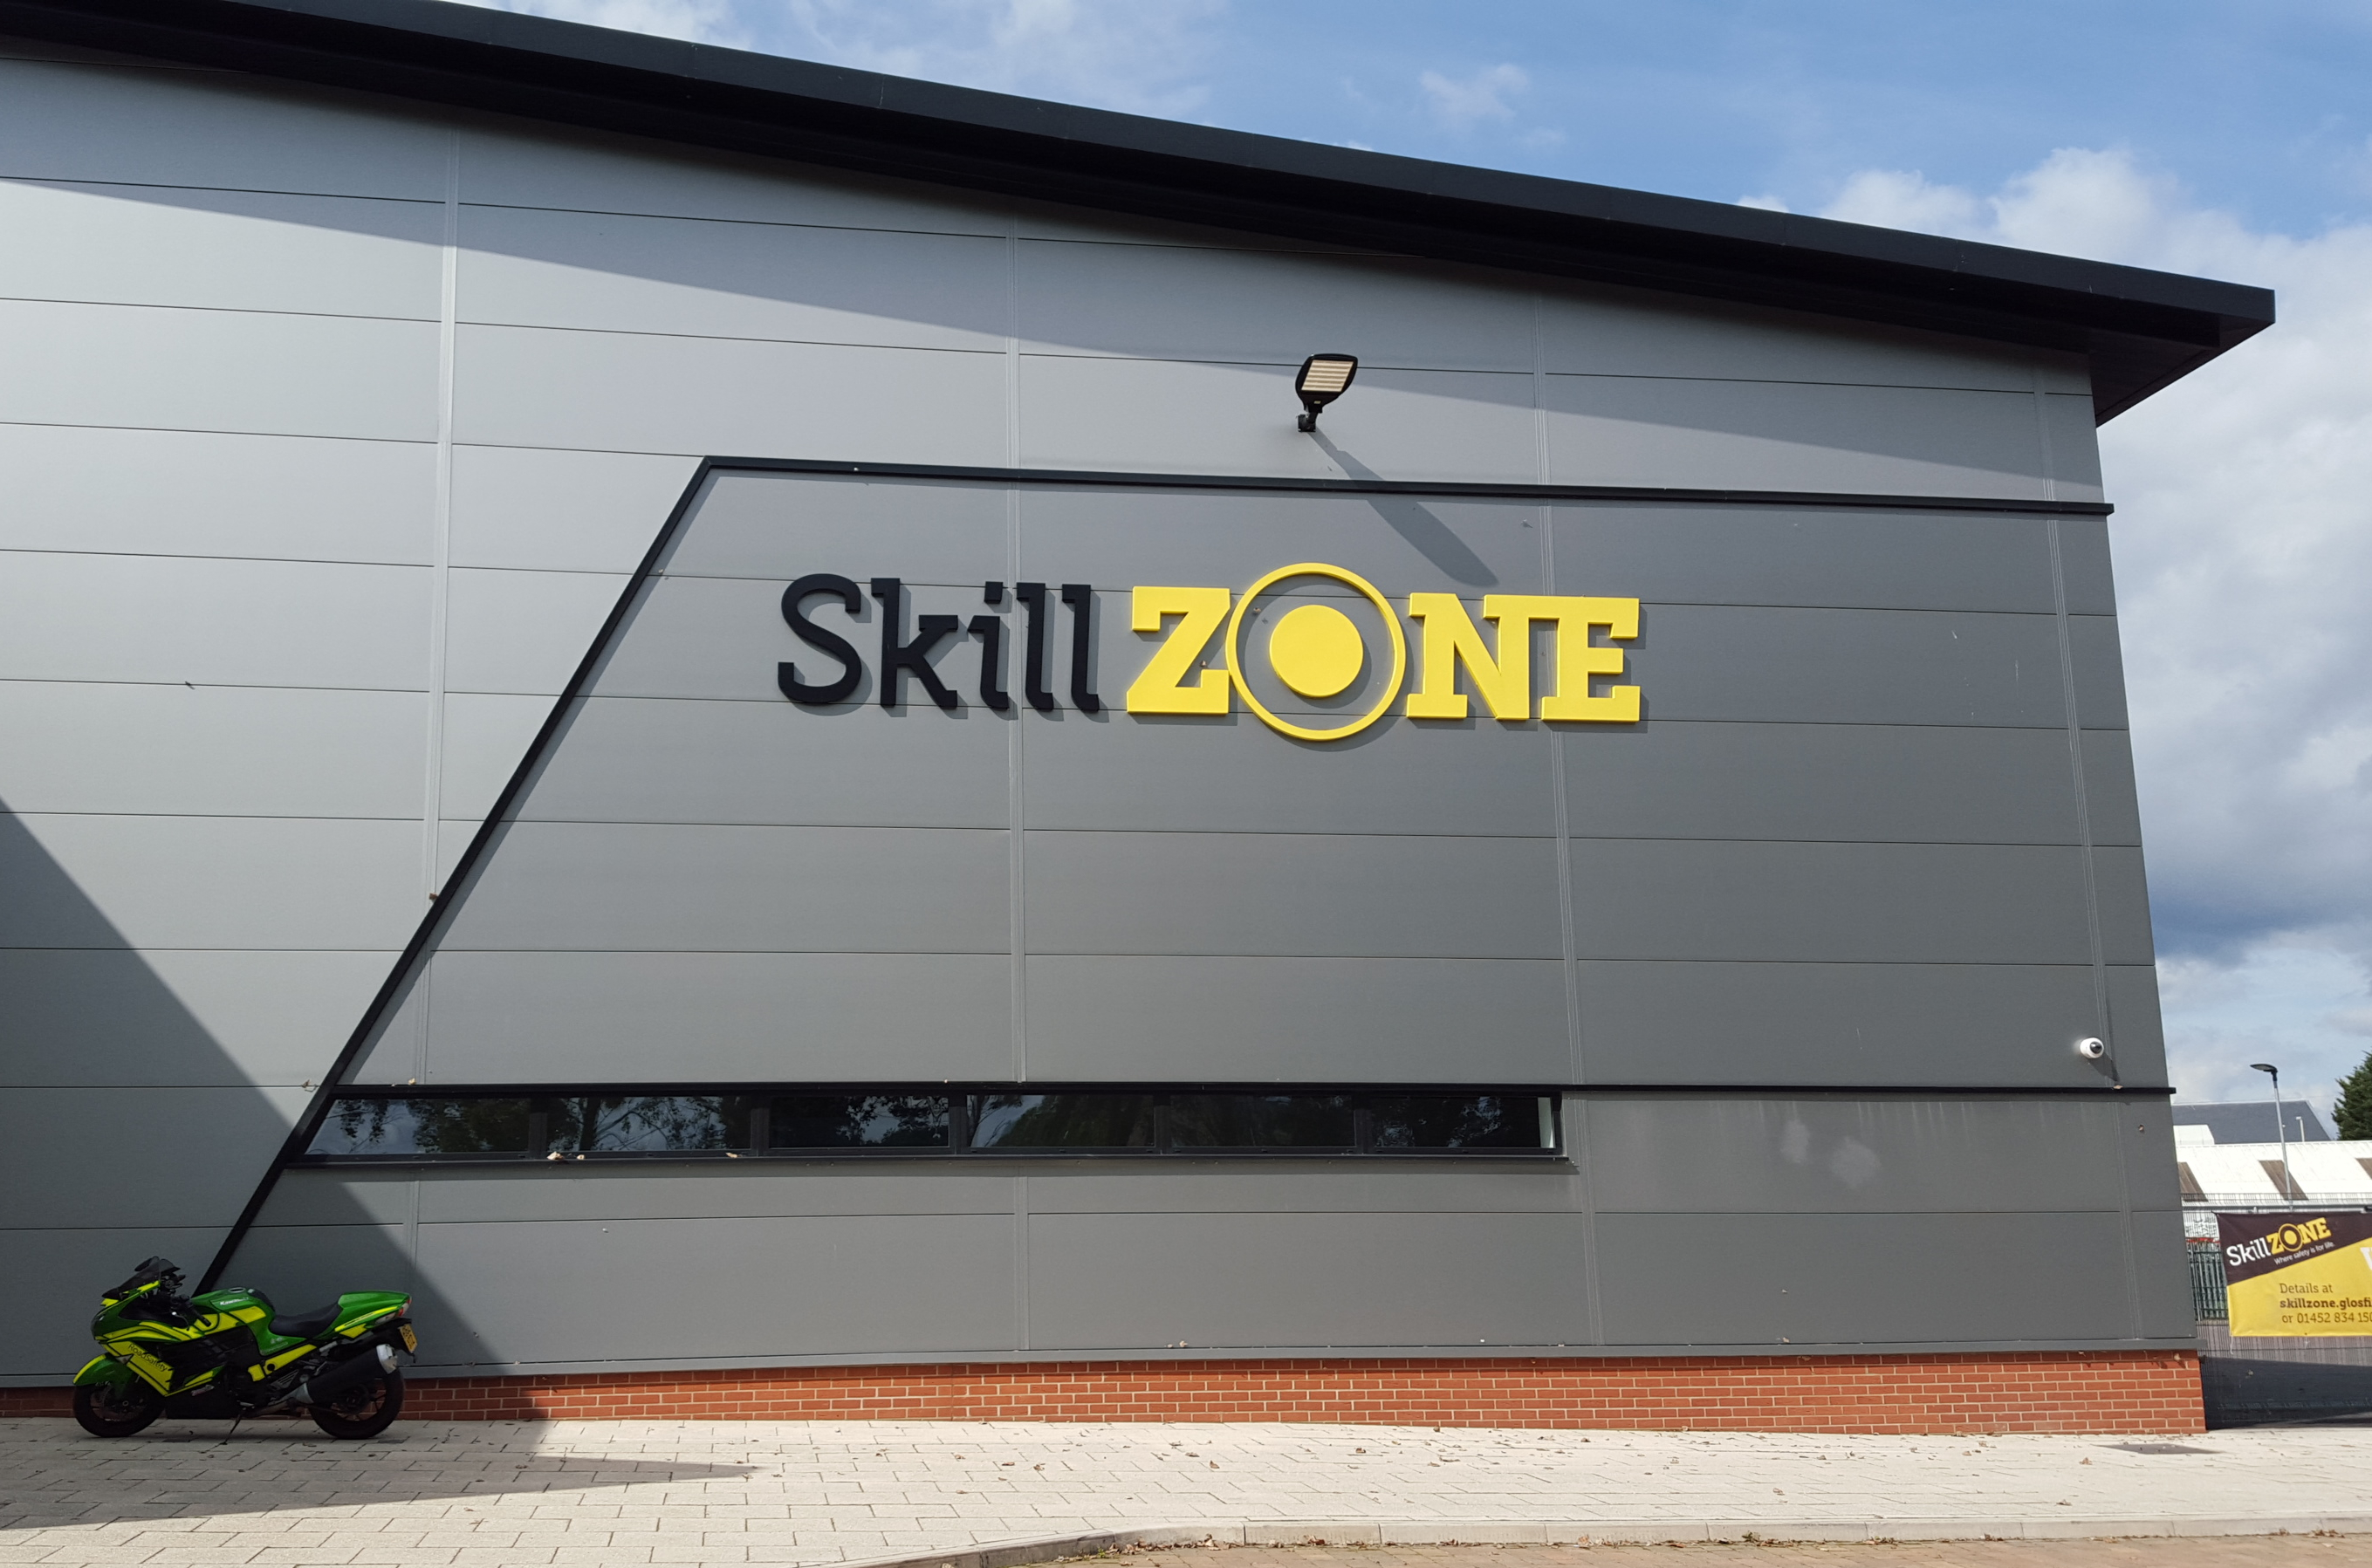 Bikers take part in safety workshops at SkillZONE